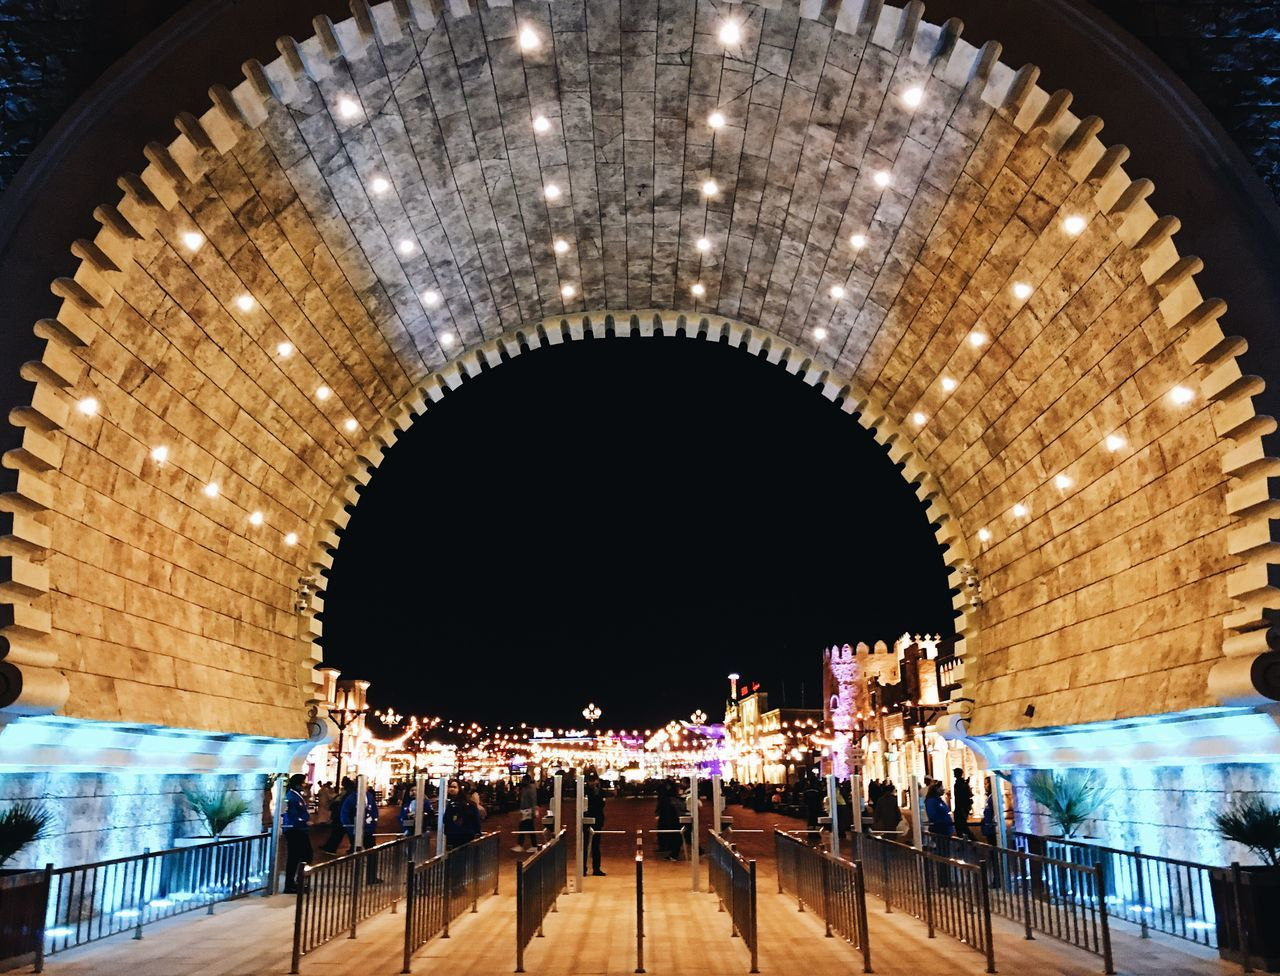 illuminated, arch, real people, large group of people, night, architecture, built structure, indoors, water, people